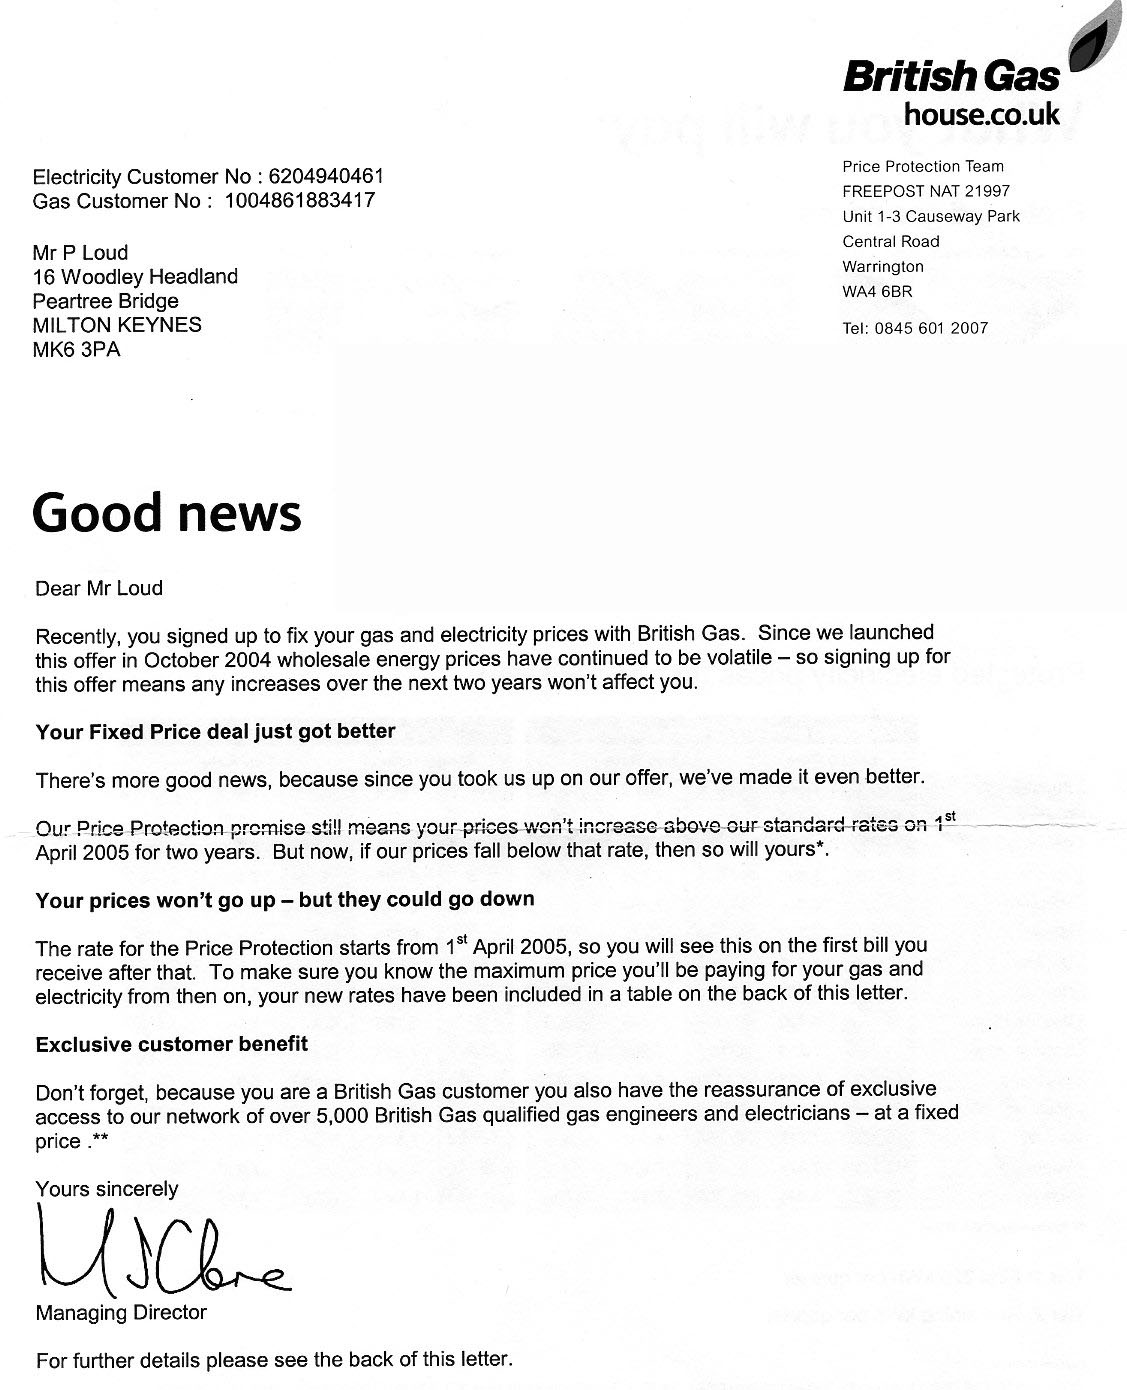 British Gas Fraud - Fixed Price Agreement.